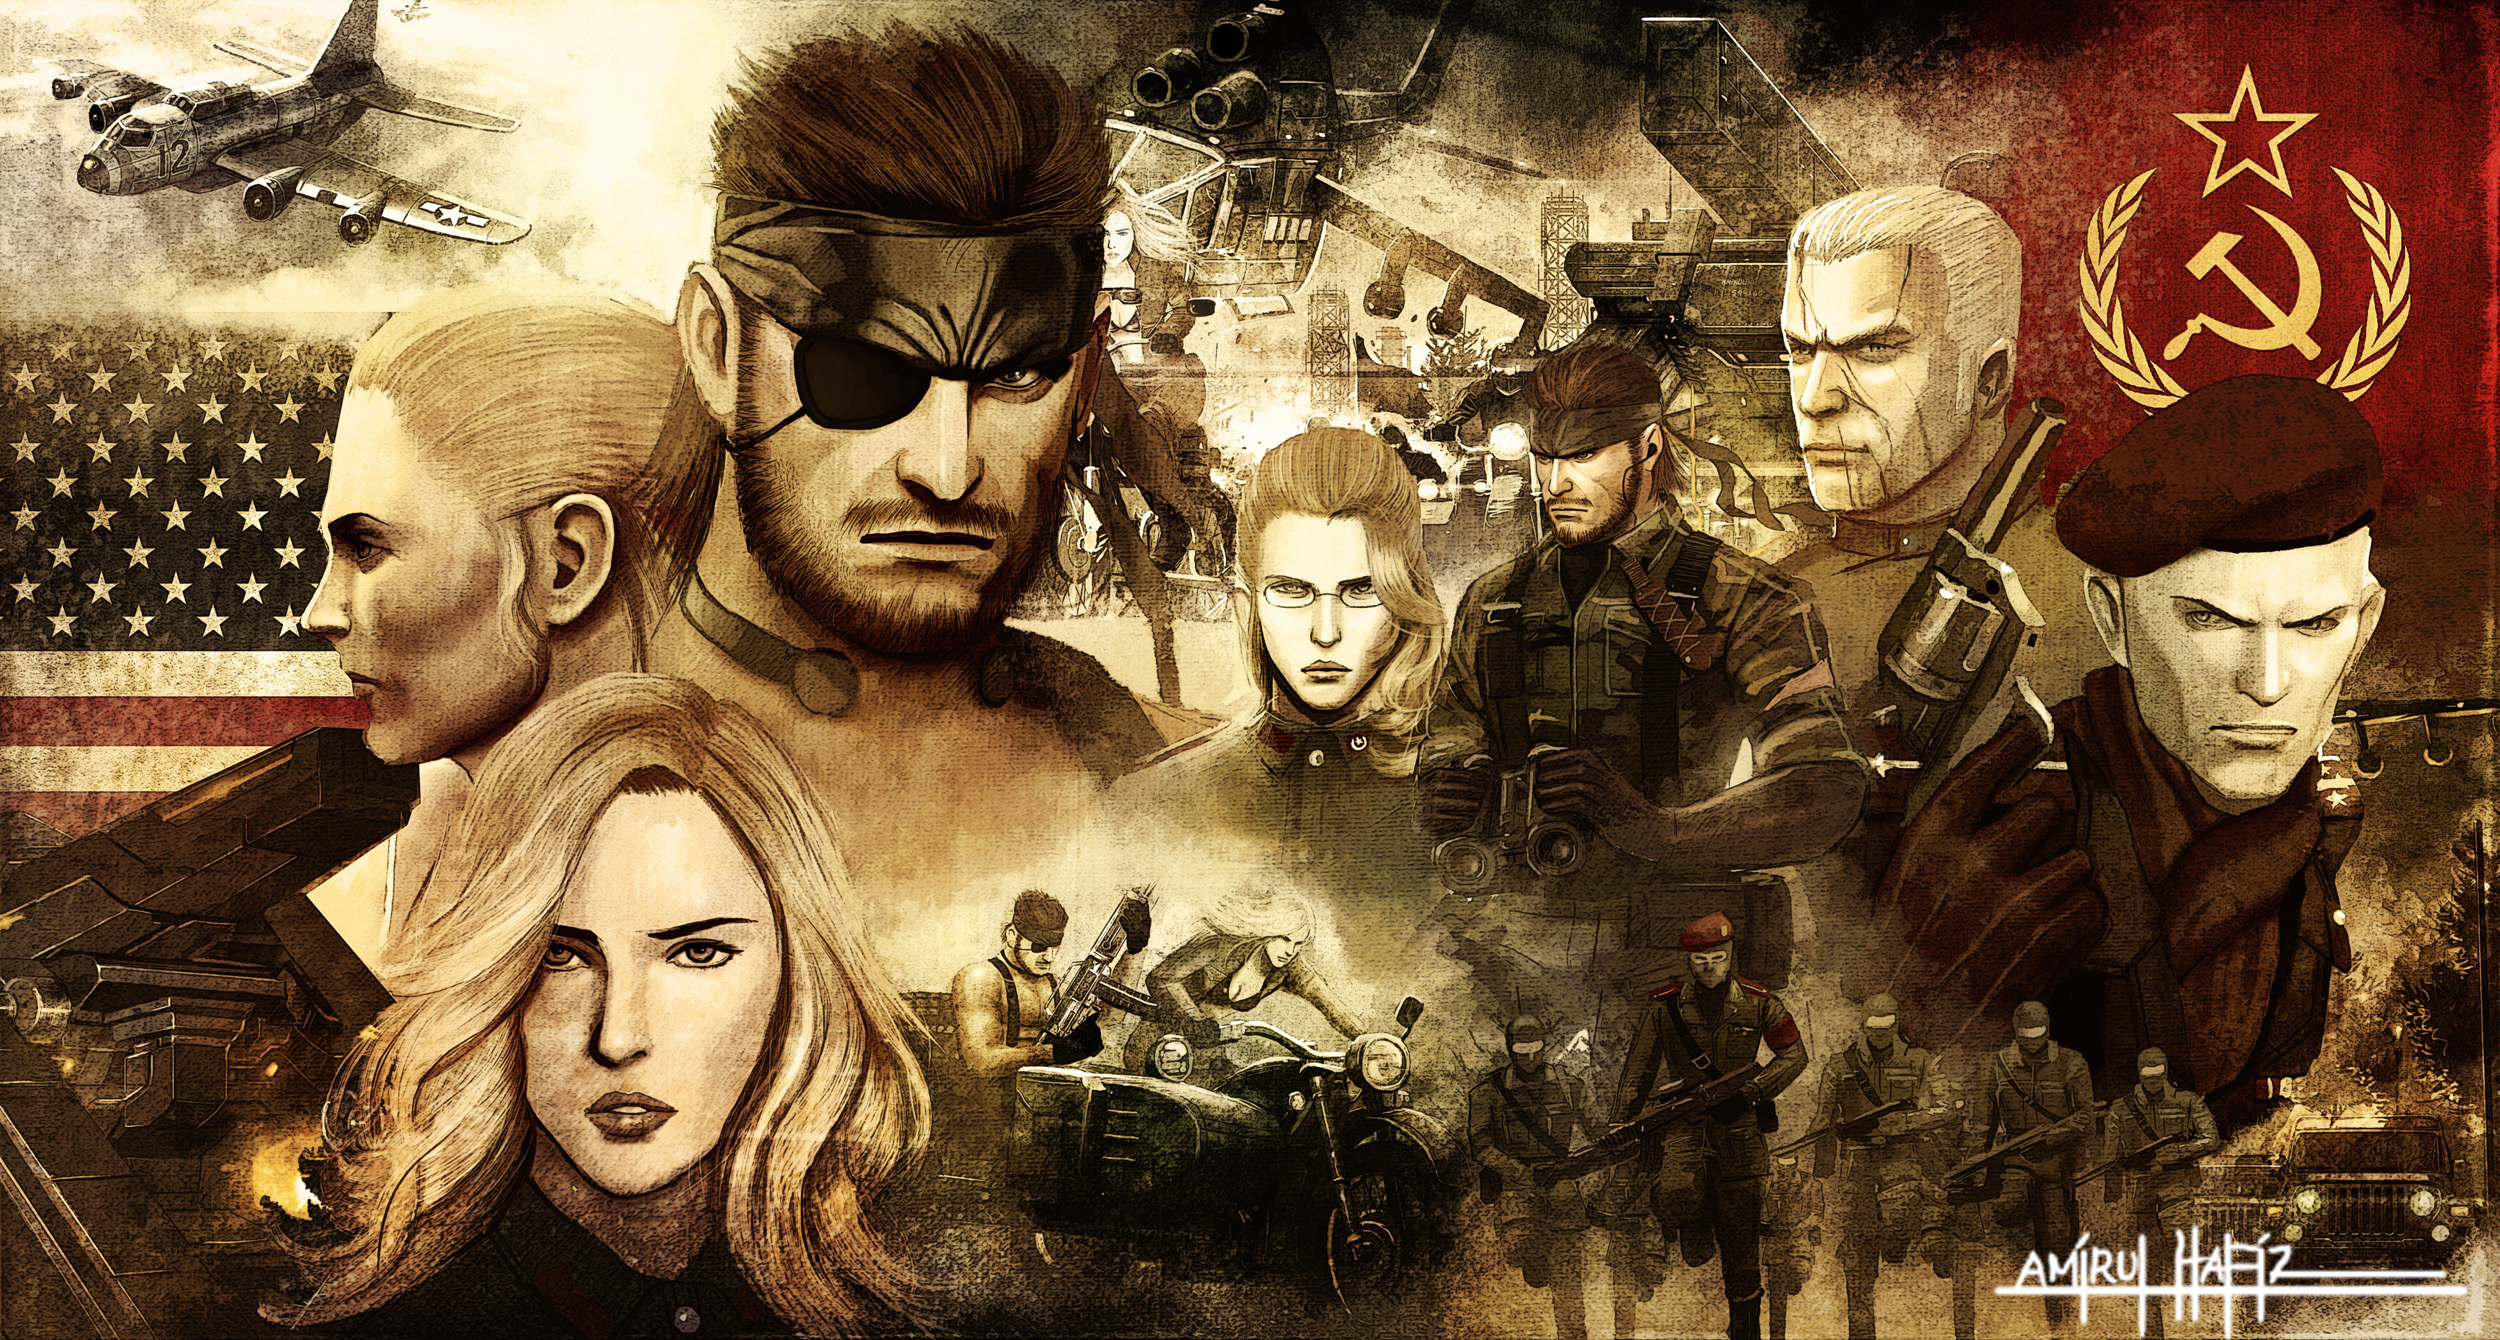 metal_gear_solid_3_snake_eater_poster_by_amirulhafiz-d5d1hd7